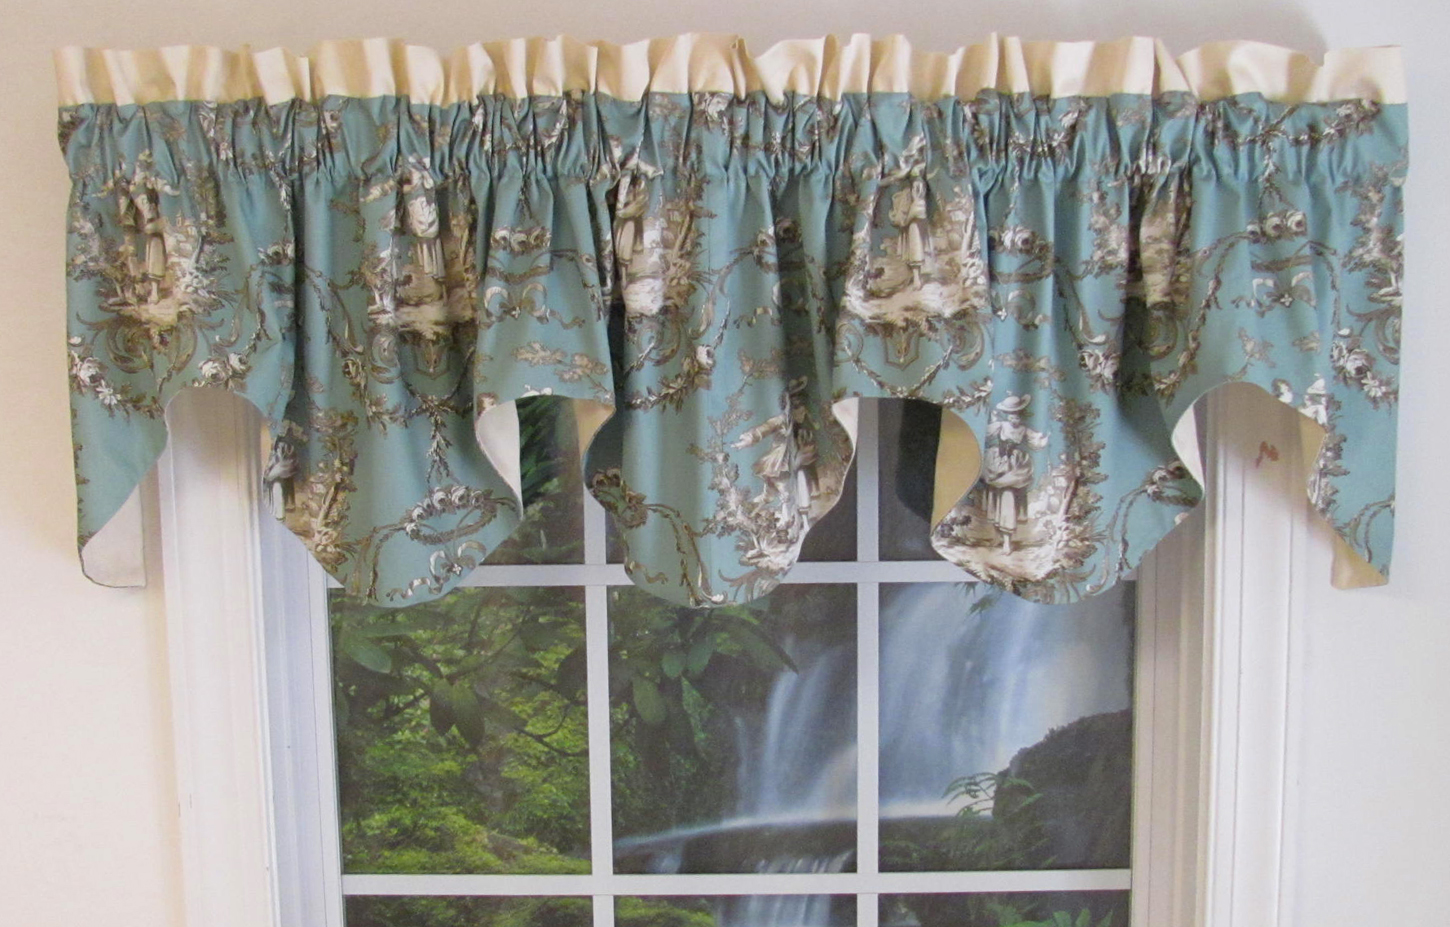 powder full lattice silver outstanding grey yellow pretty swag living gray suitable valance small tier enthra kitchen size room beautiful by half taupe delight miraculous of teal creativetouchdecor and cafe blue a curtains window curtain bathroom valances